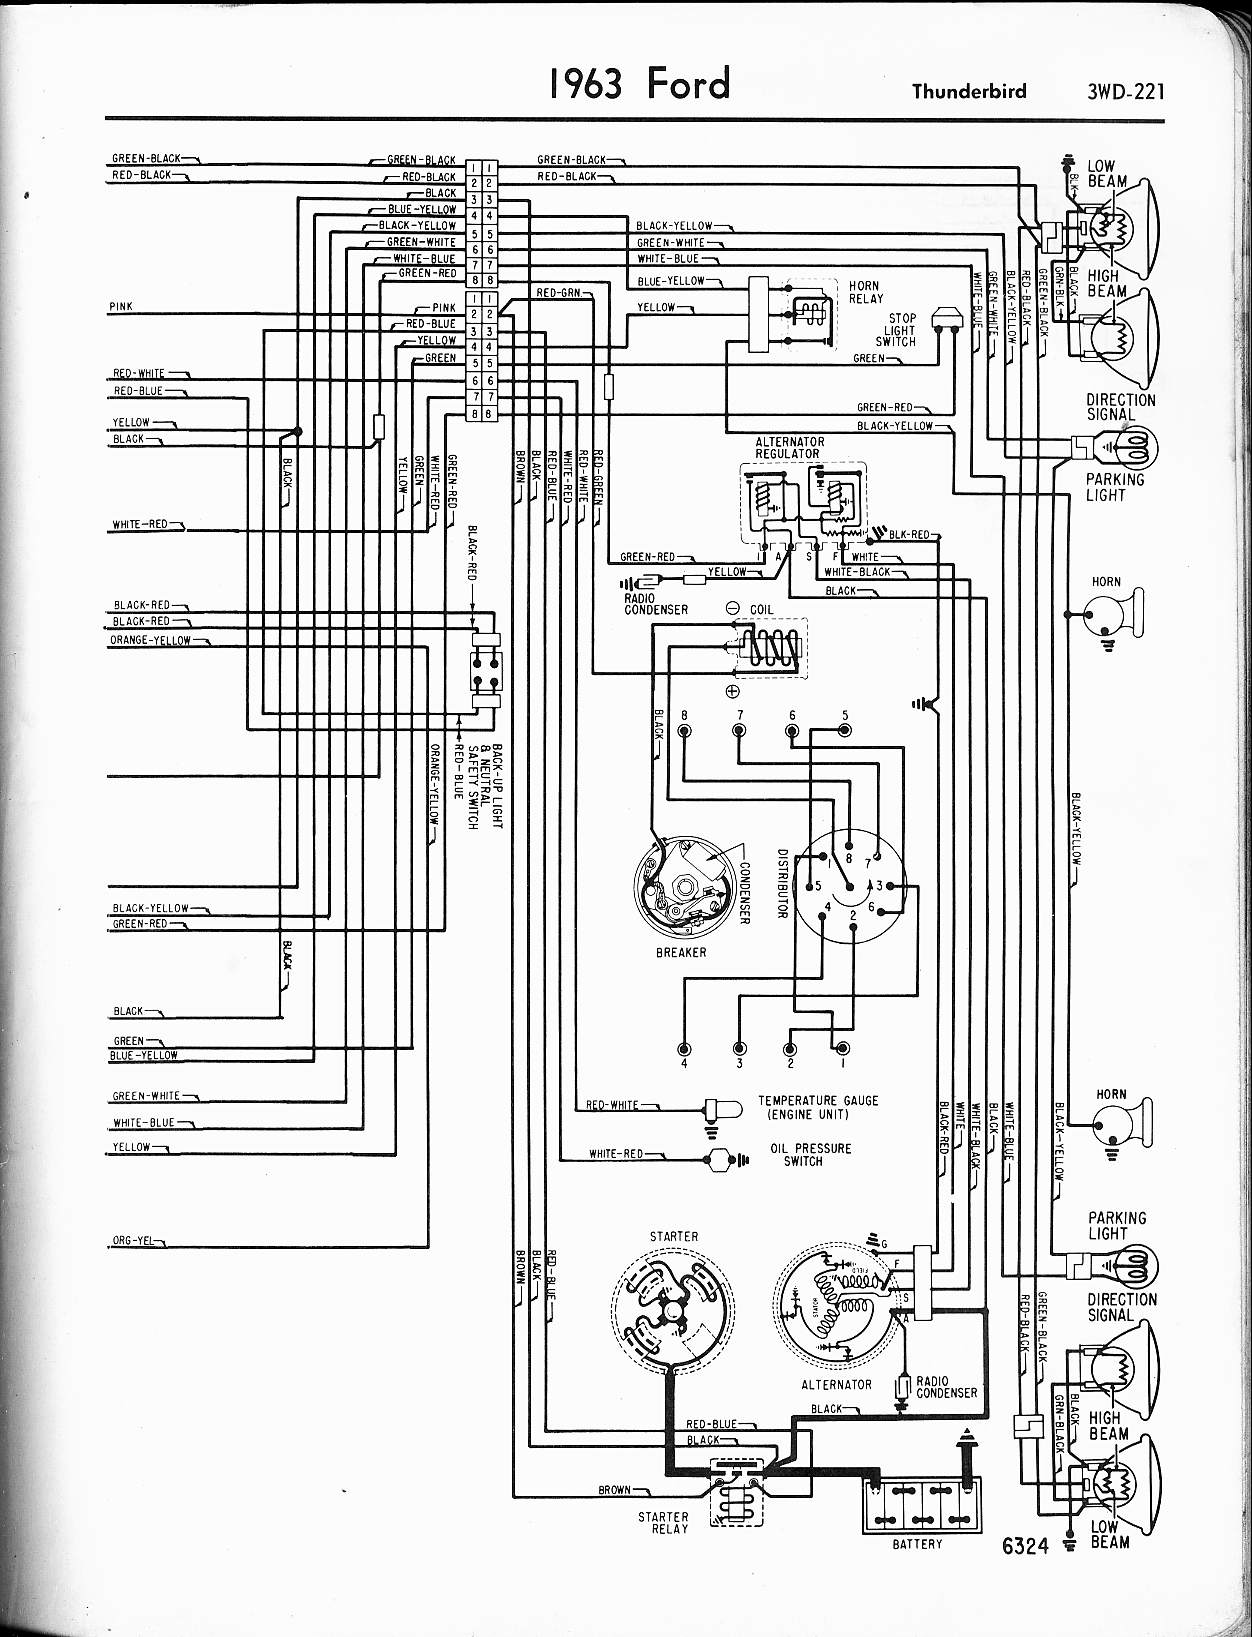 MWire5765 221 57 65 ford wiring diagrams 1965 thunderbird alternator wiring diagram at crackthecode.co